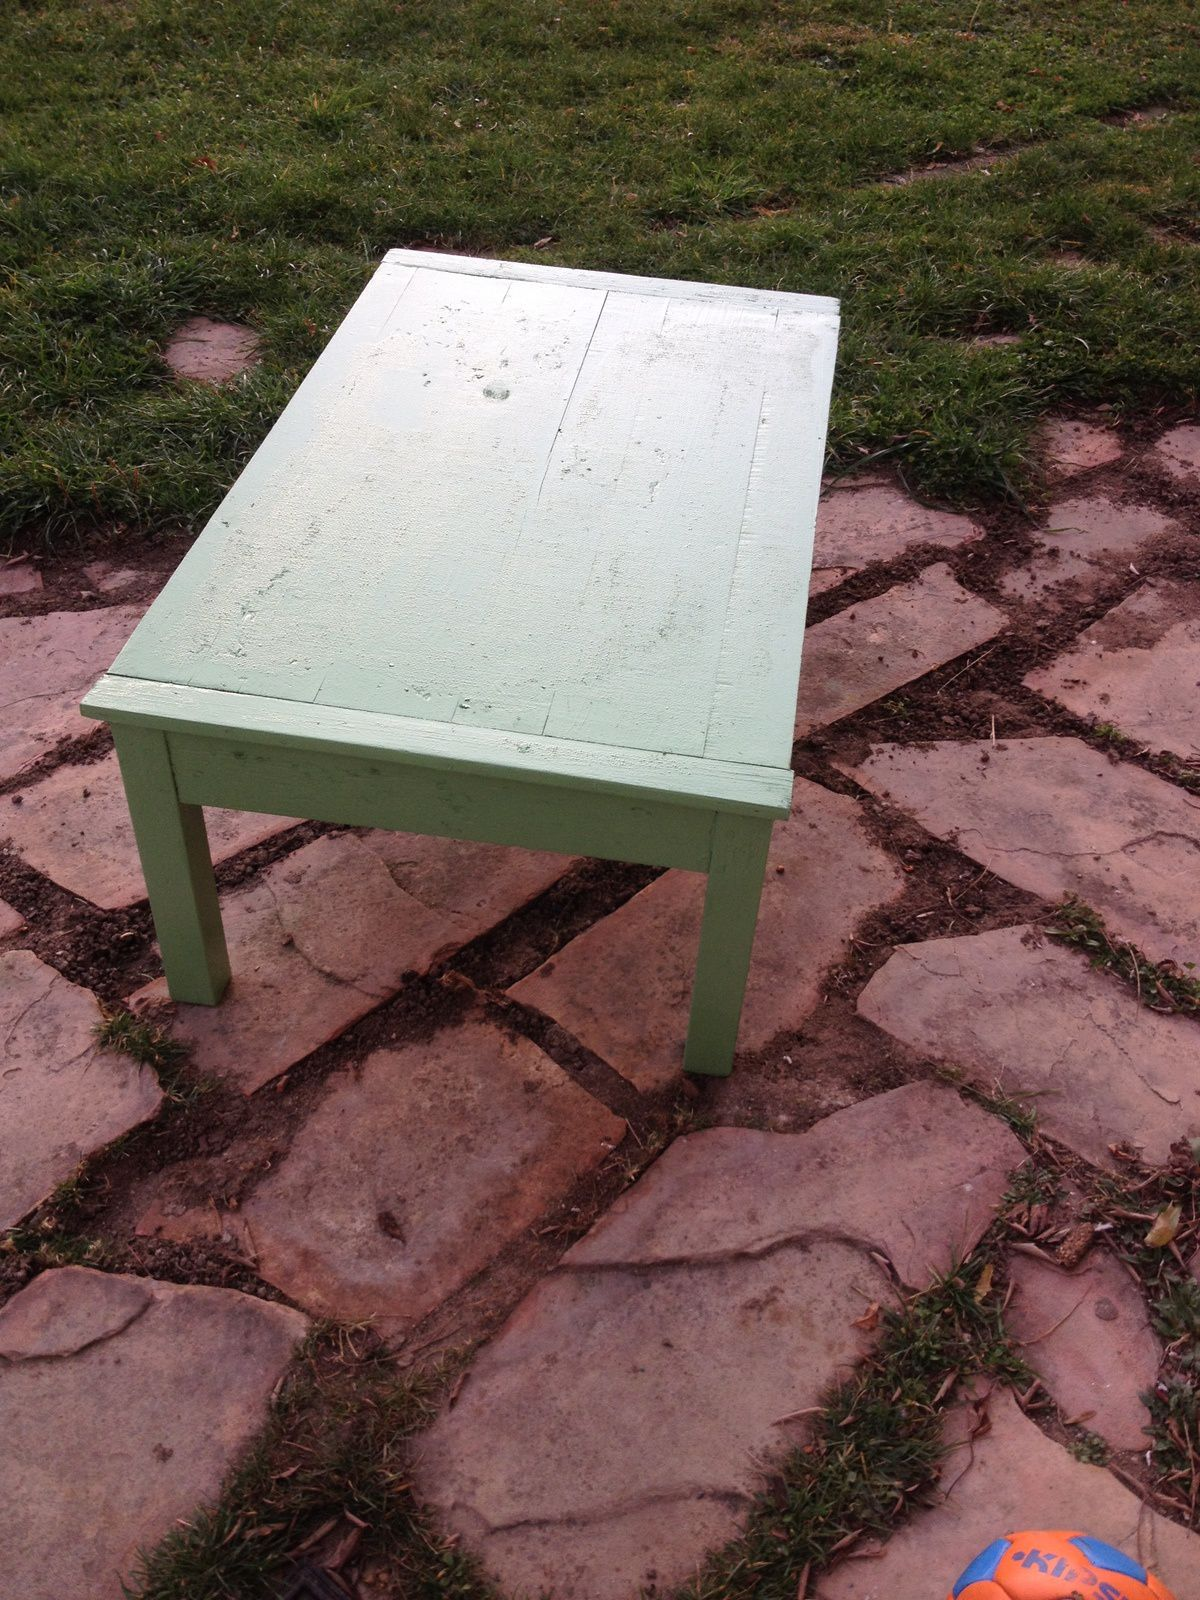 transformation d'un table basse- diy - avant apres- charlotteblabla blog*